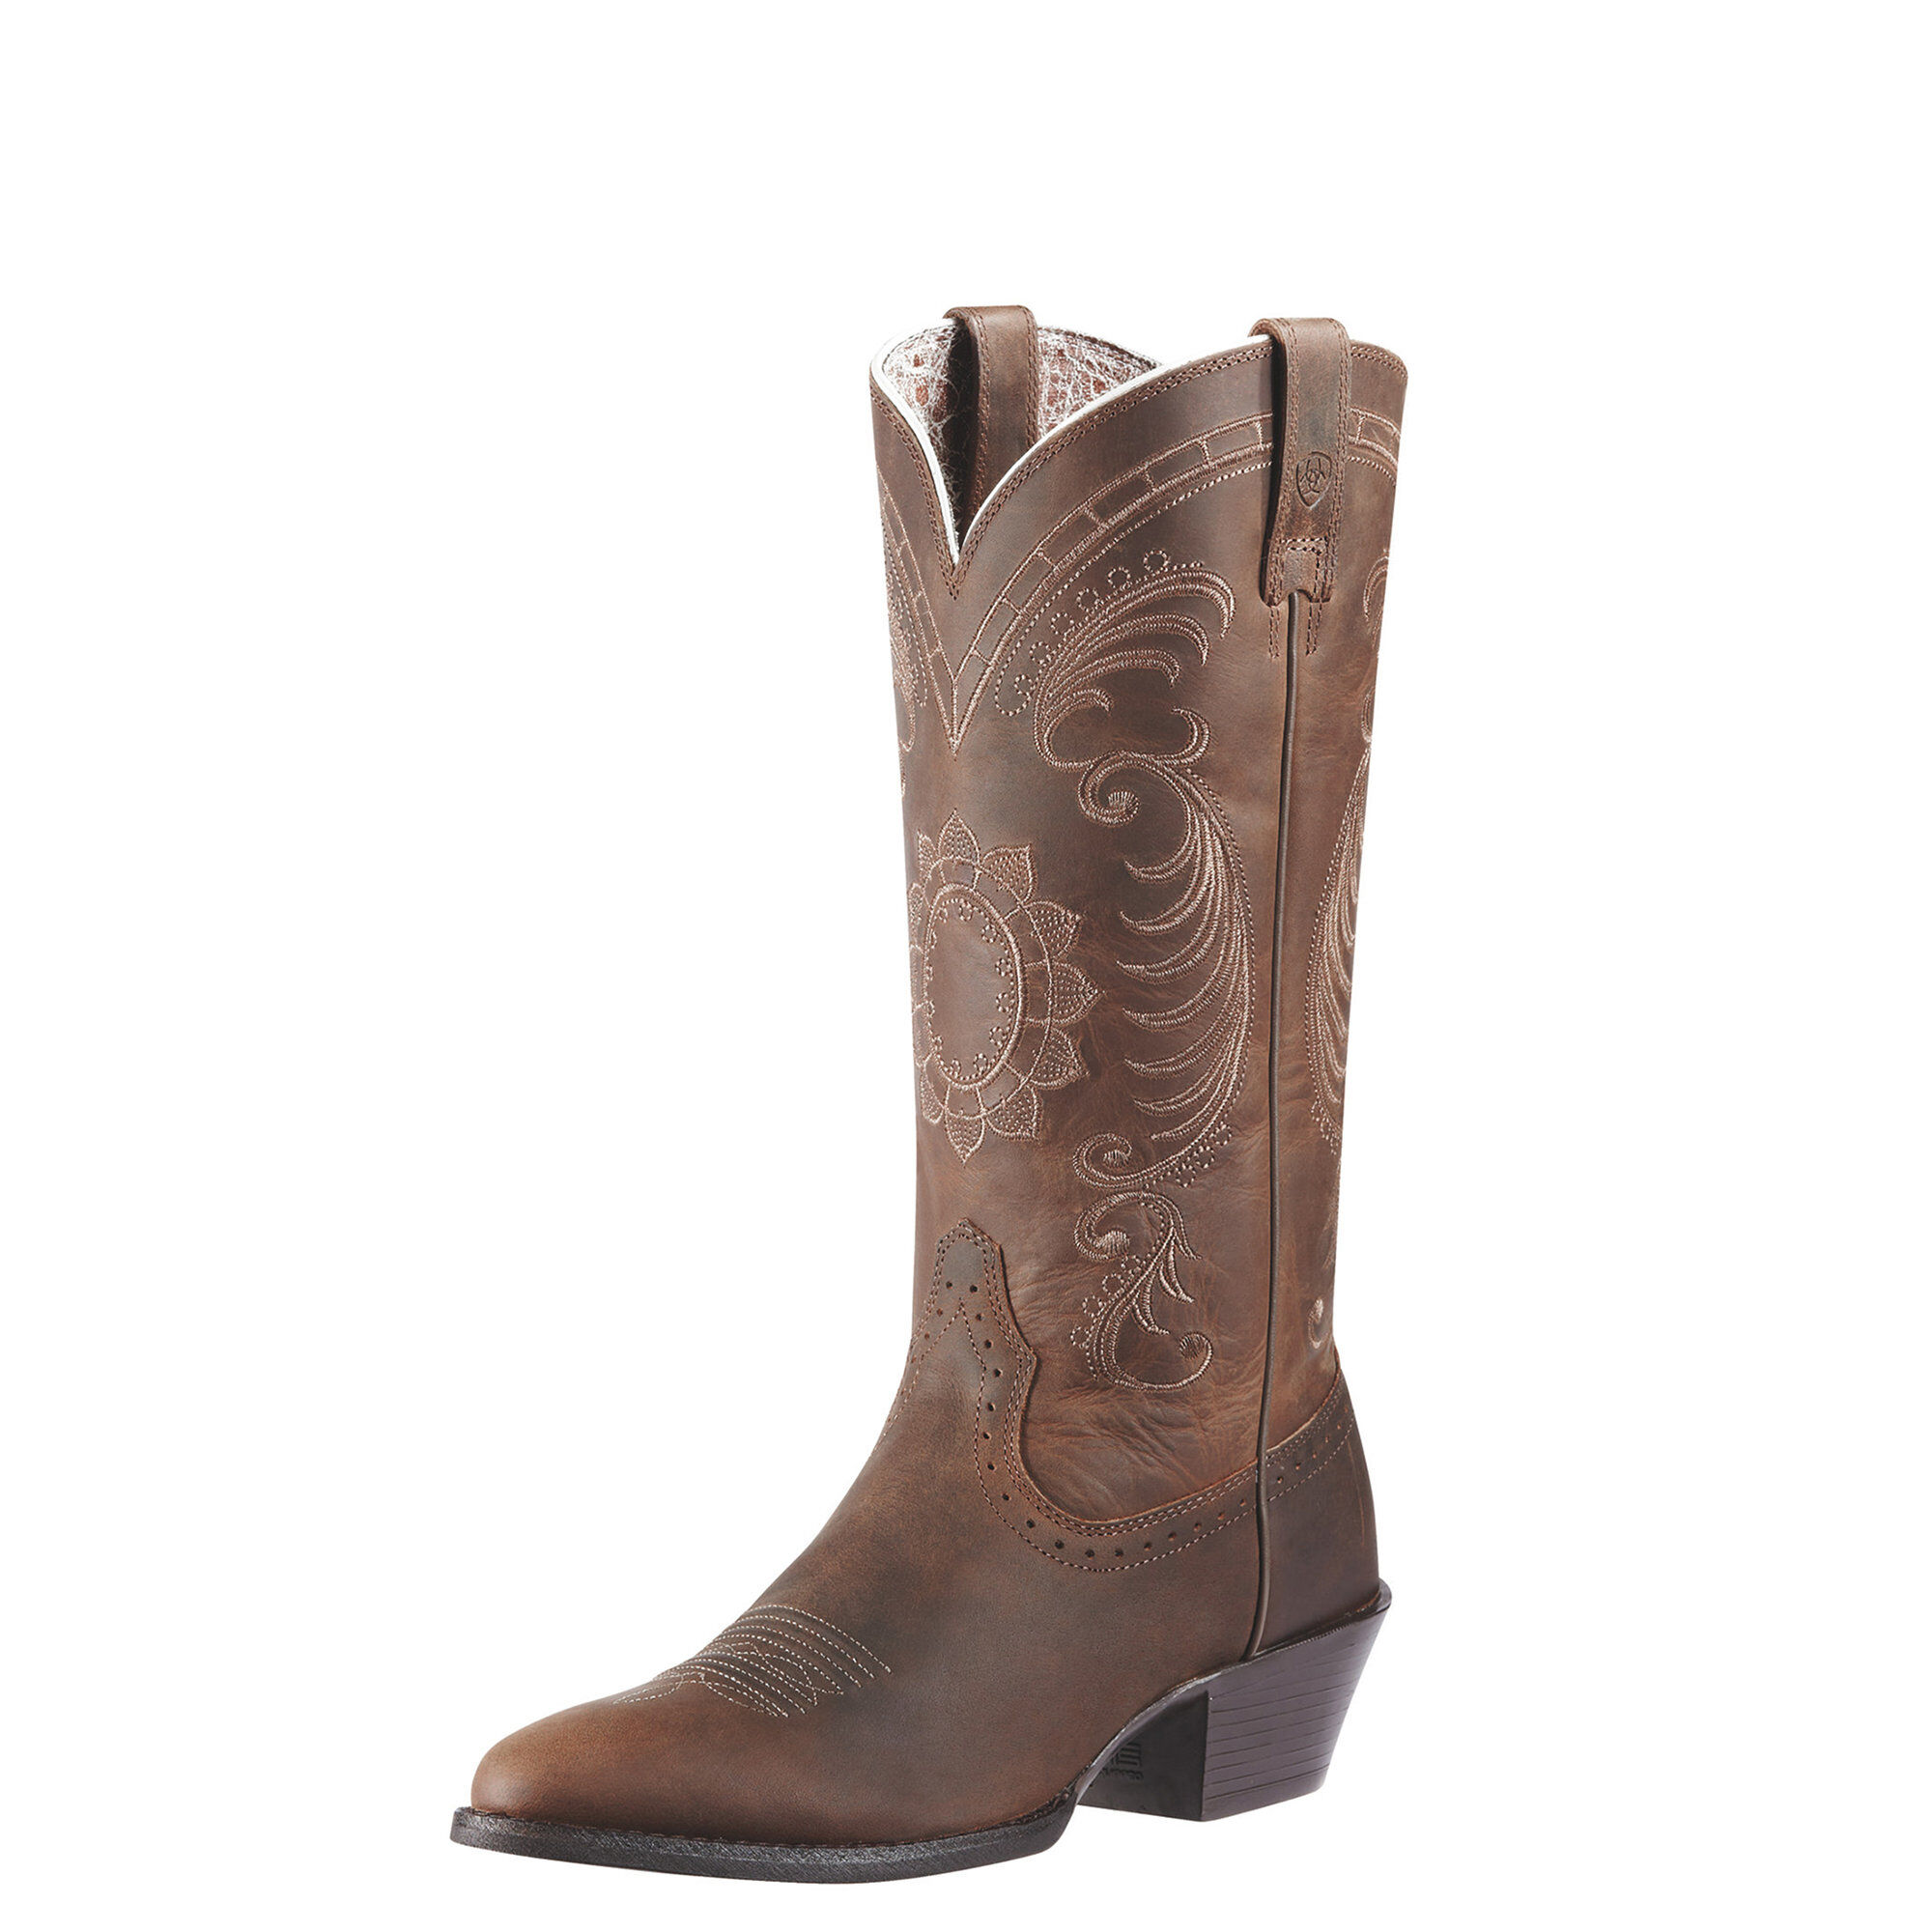 Ariat Women's Magnolia Western Boots in Distressed Brown